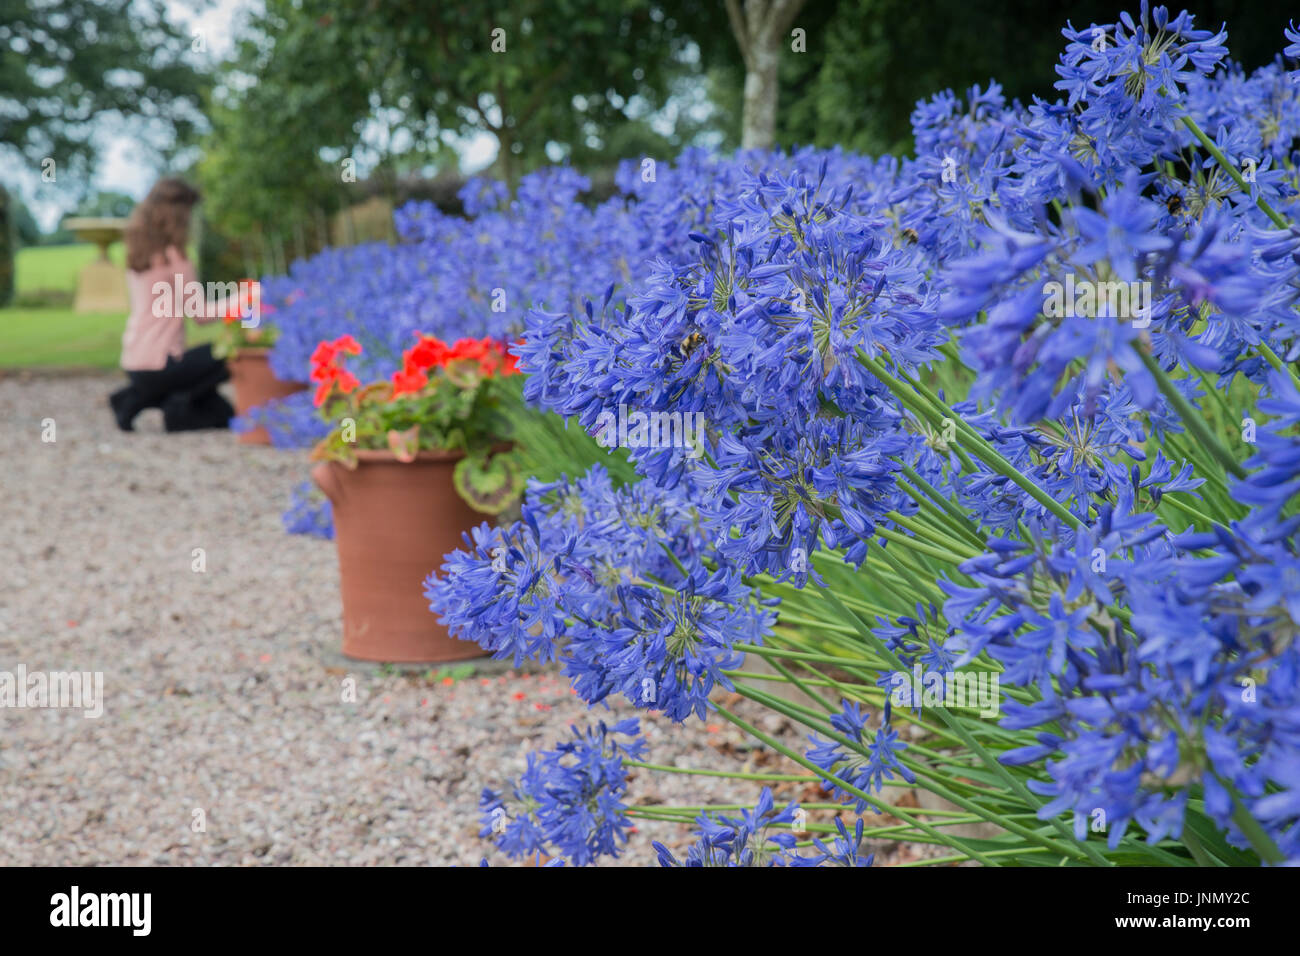 Agapanthus in bloom in the garden with gravel path - Stock Image